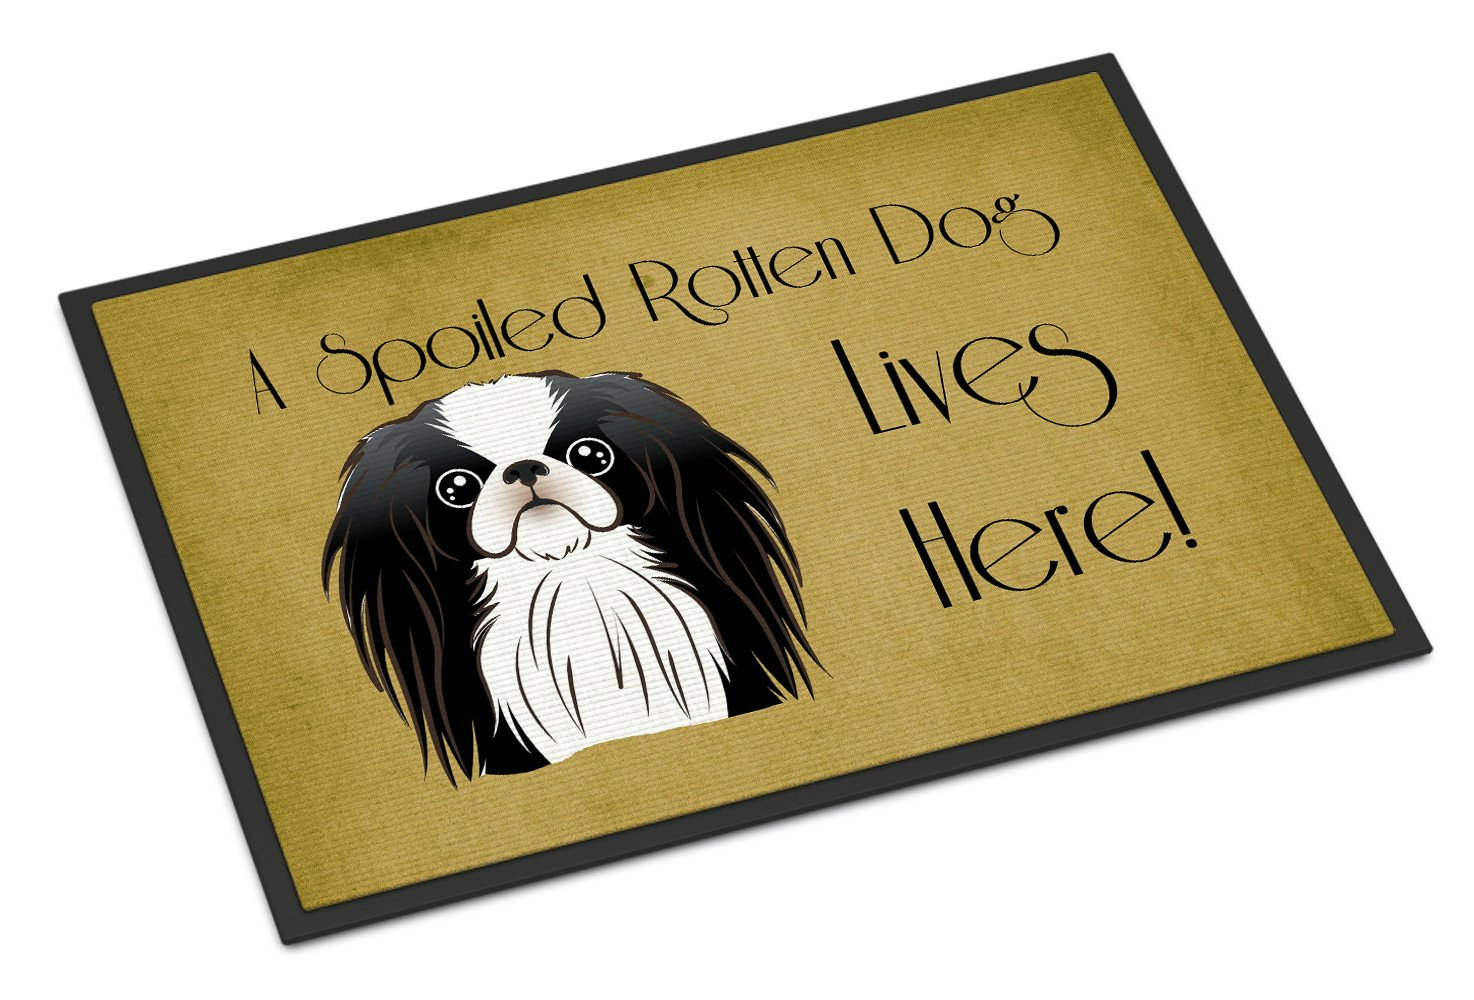 Japanese Chin Spoiled Dog Lives Here Indoor or Outdoor Mat 18x27 BB1478MAT - the-store.com